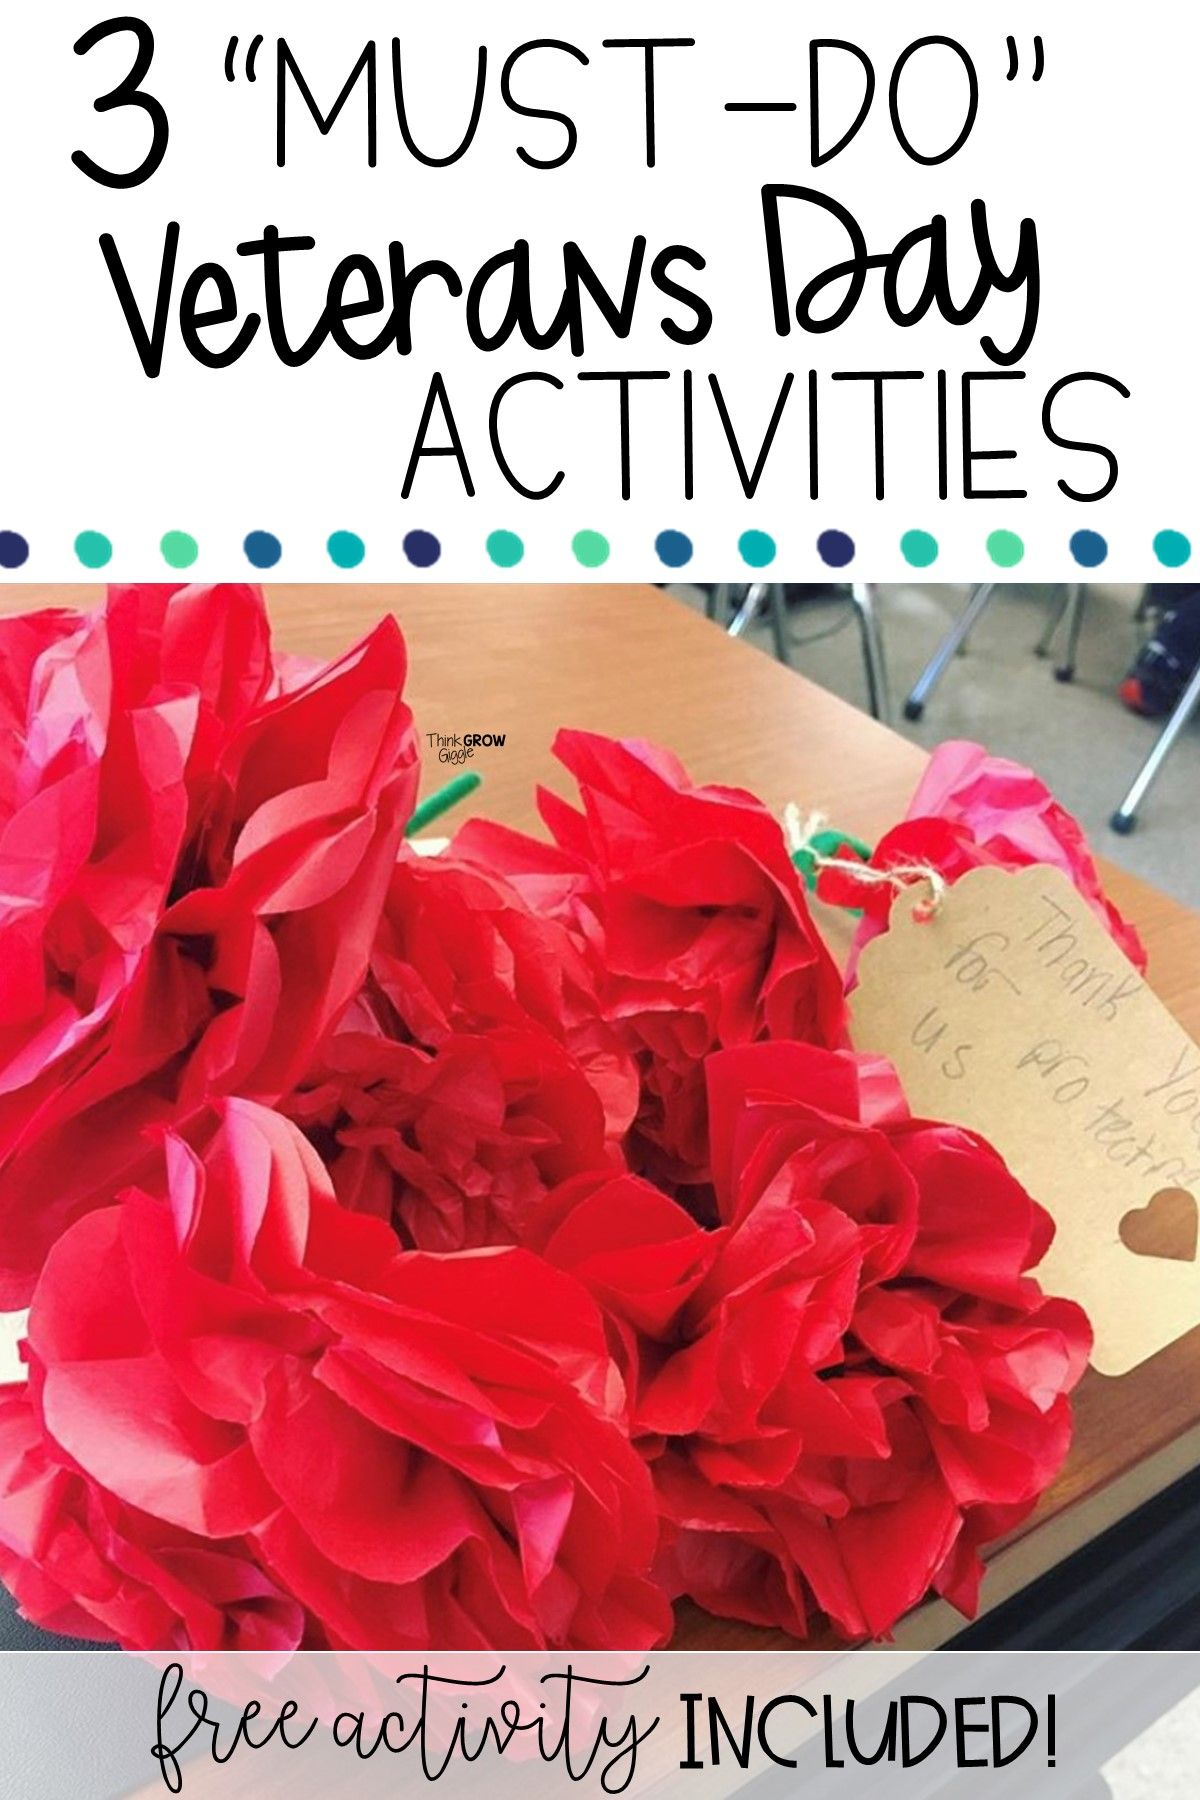 Easy To Implement Ideas Activities And Free Printable